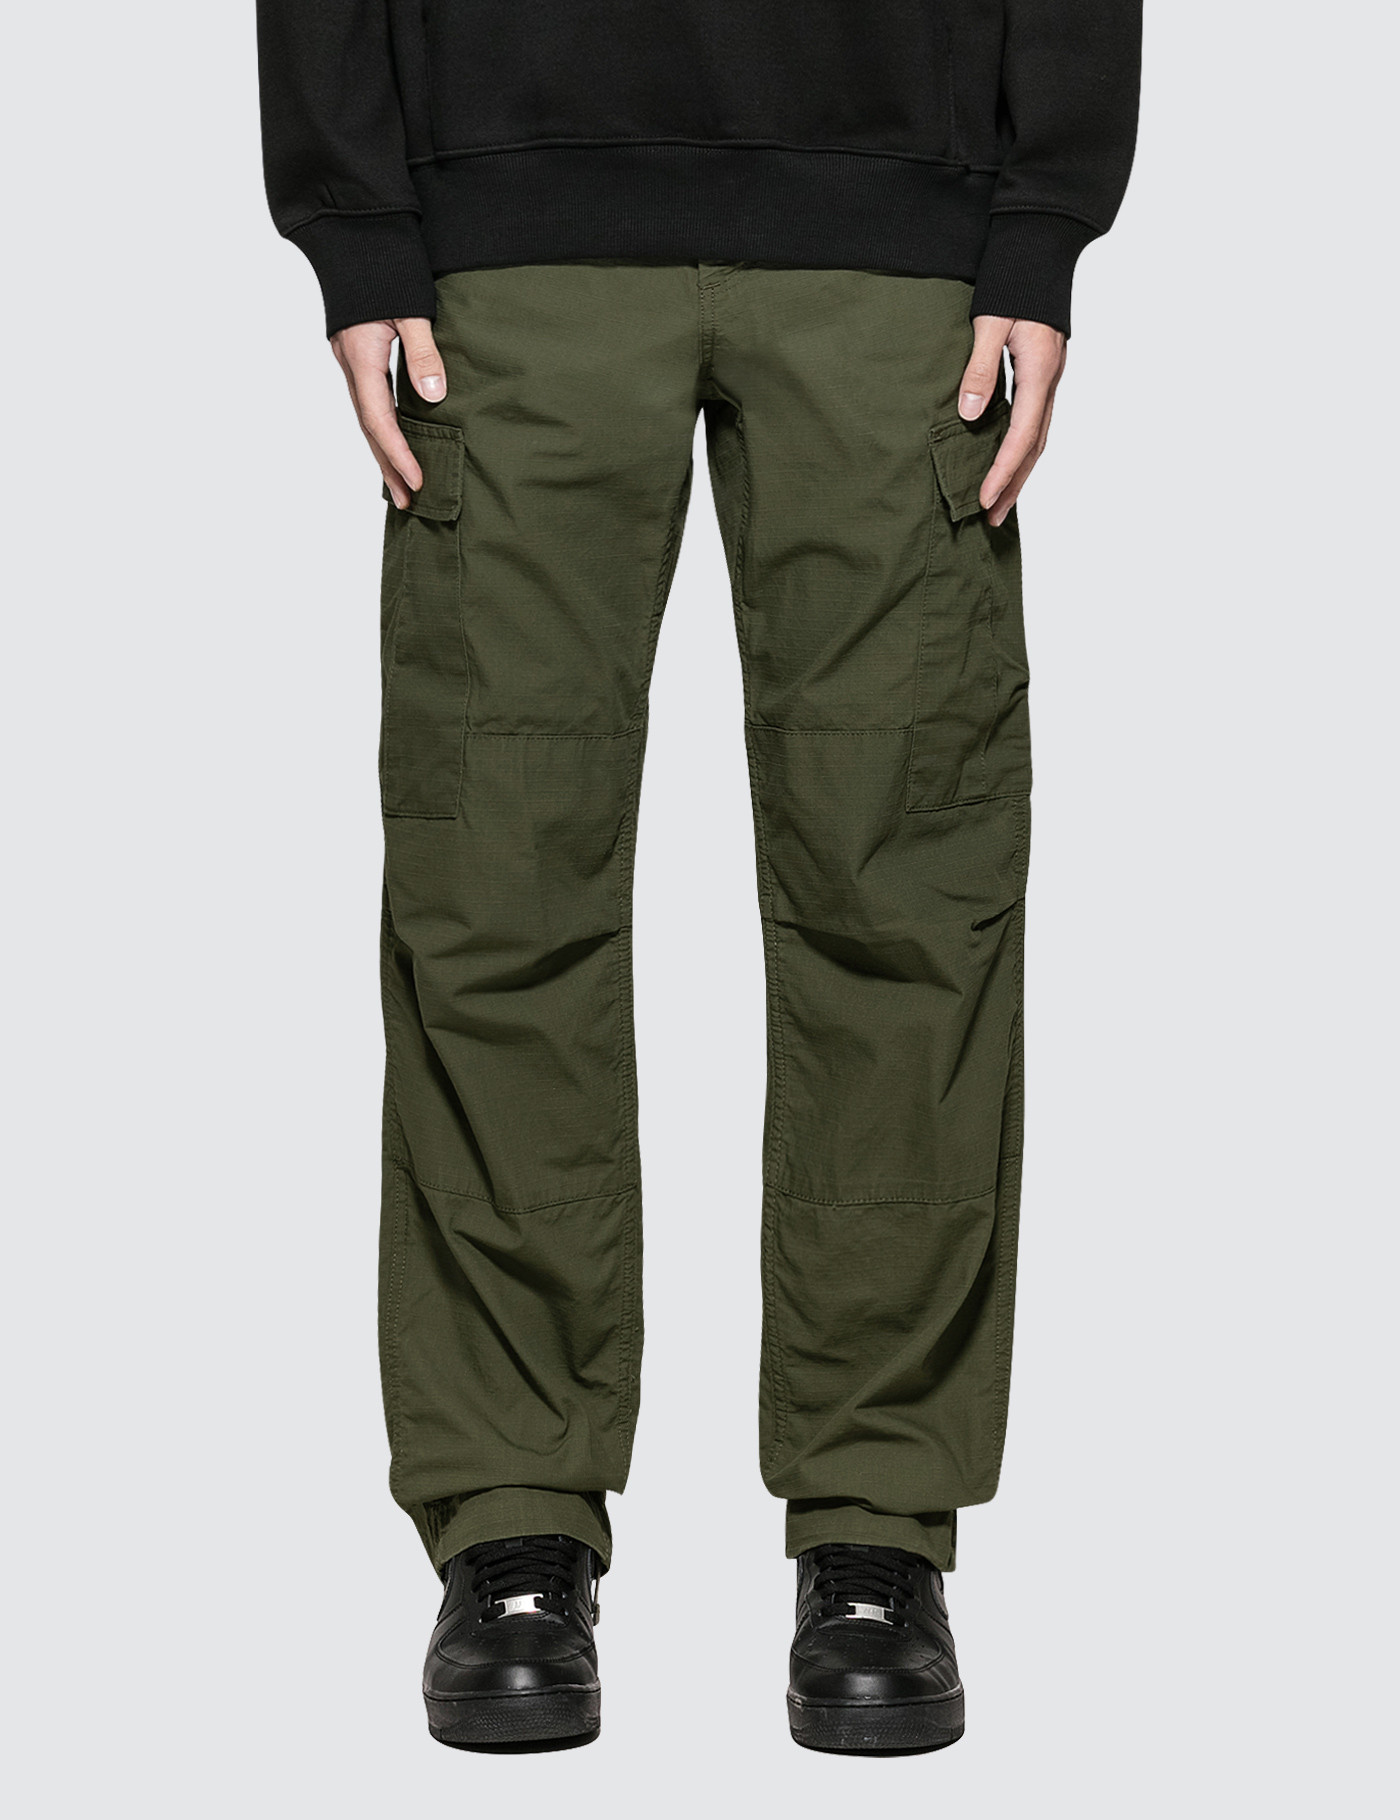 cb494ac003d Buy Original Carhartt WORK IN PROGRESS Regular Cargo Pants at ...